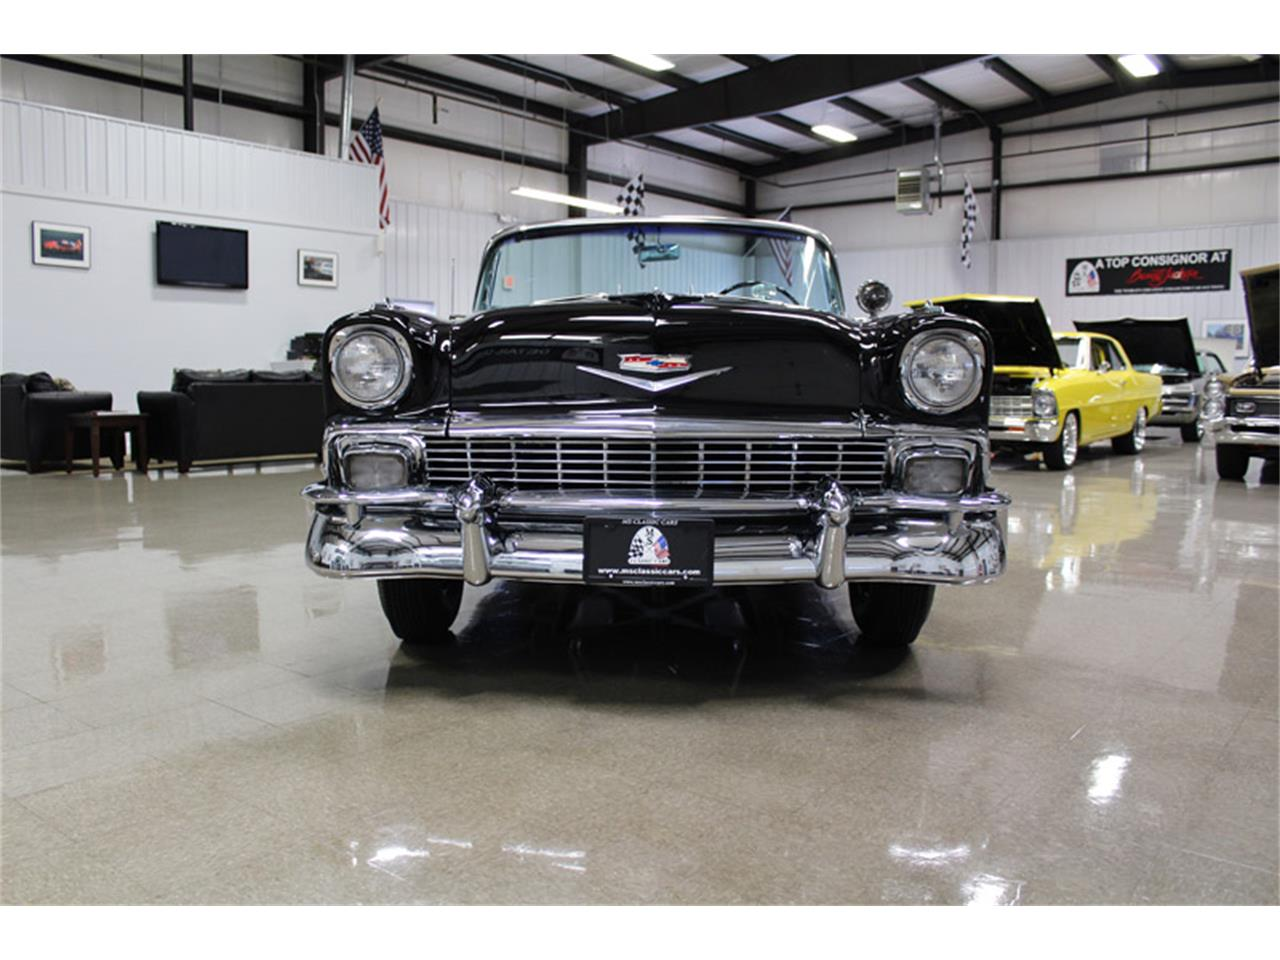 For Sale: 1956 Chevrolet Bel Air in Seekonk, Massachusetts